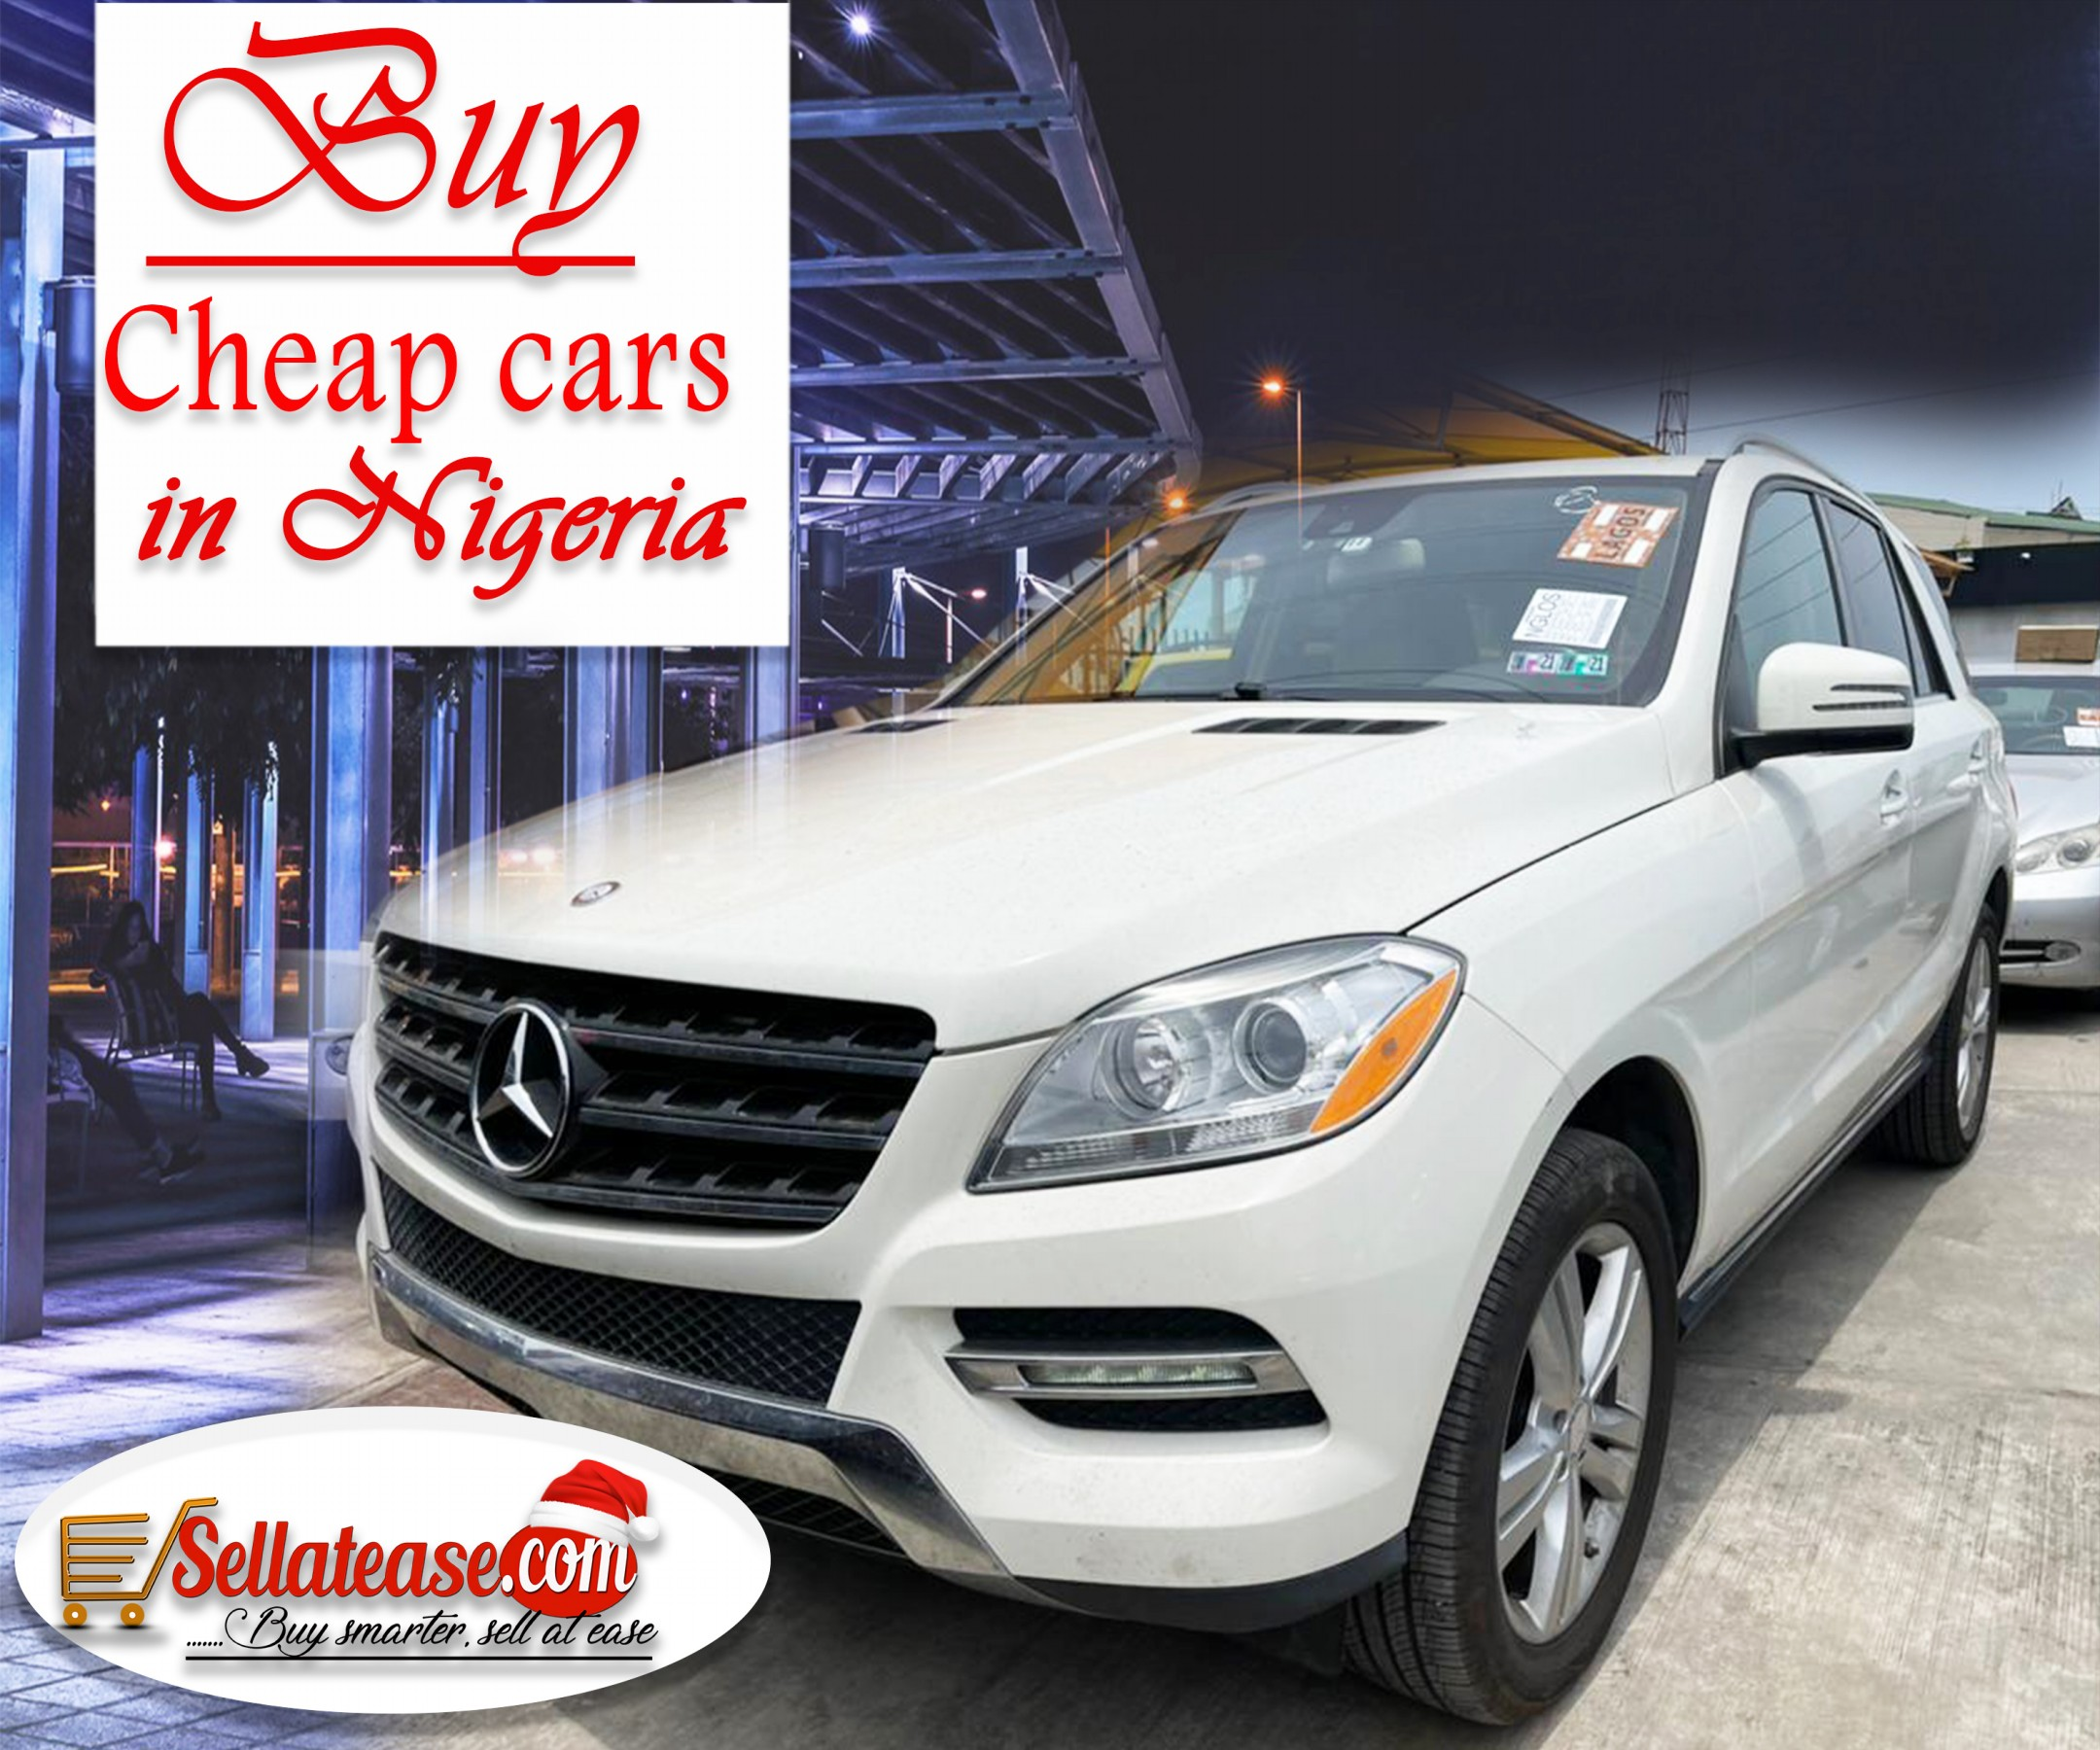 Cheap cars for sale in Nigeria